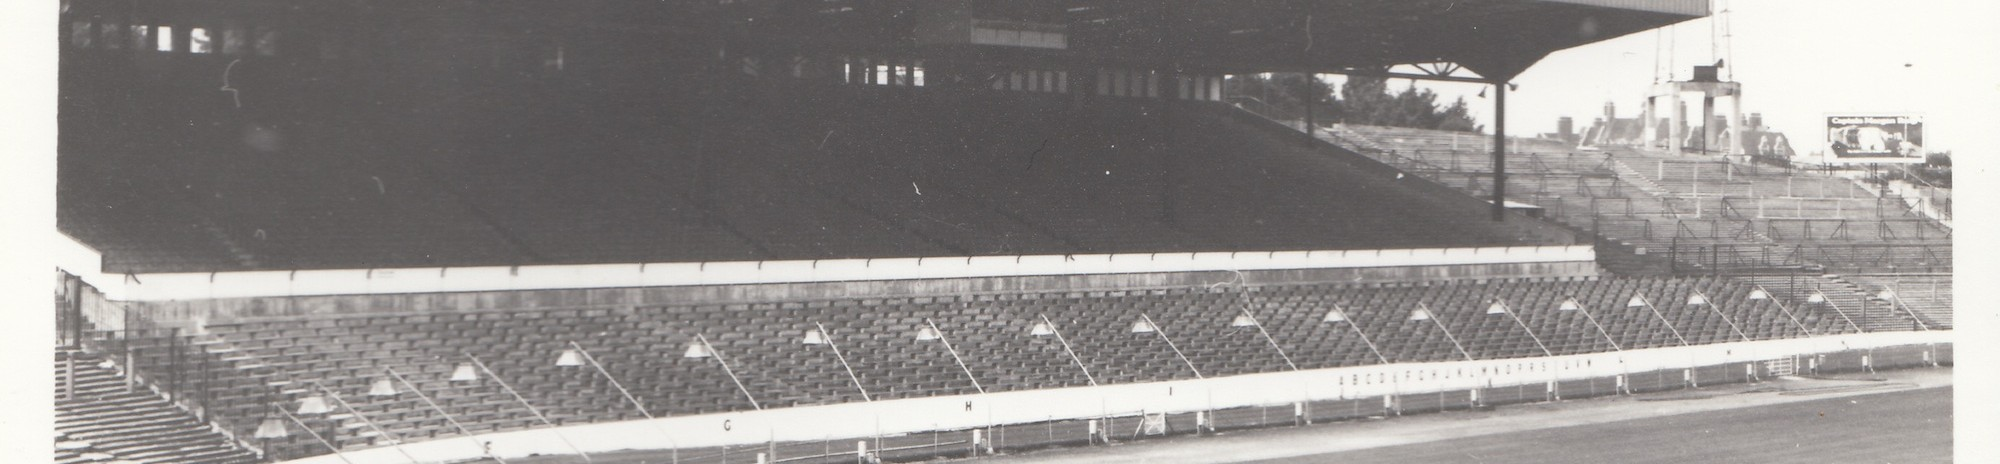 BIG Chelsea - Stamford Bridge - West Stand 1 - August 1969